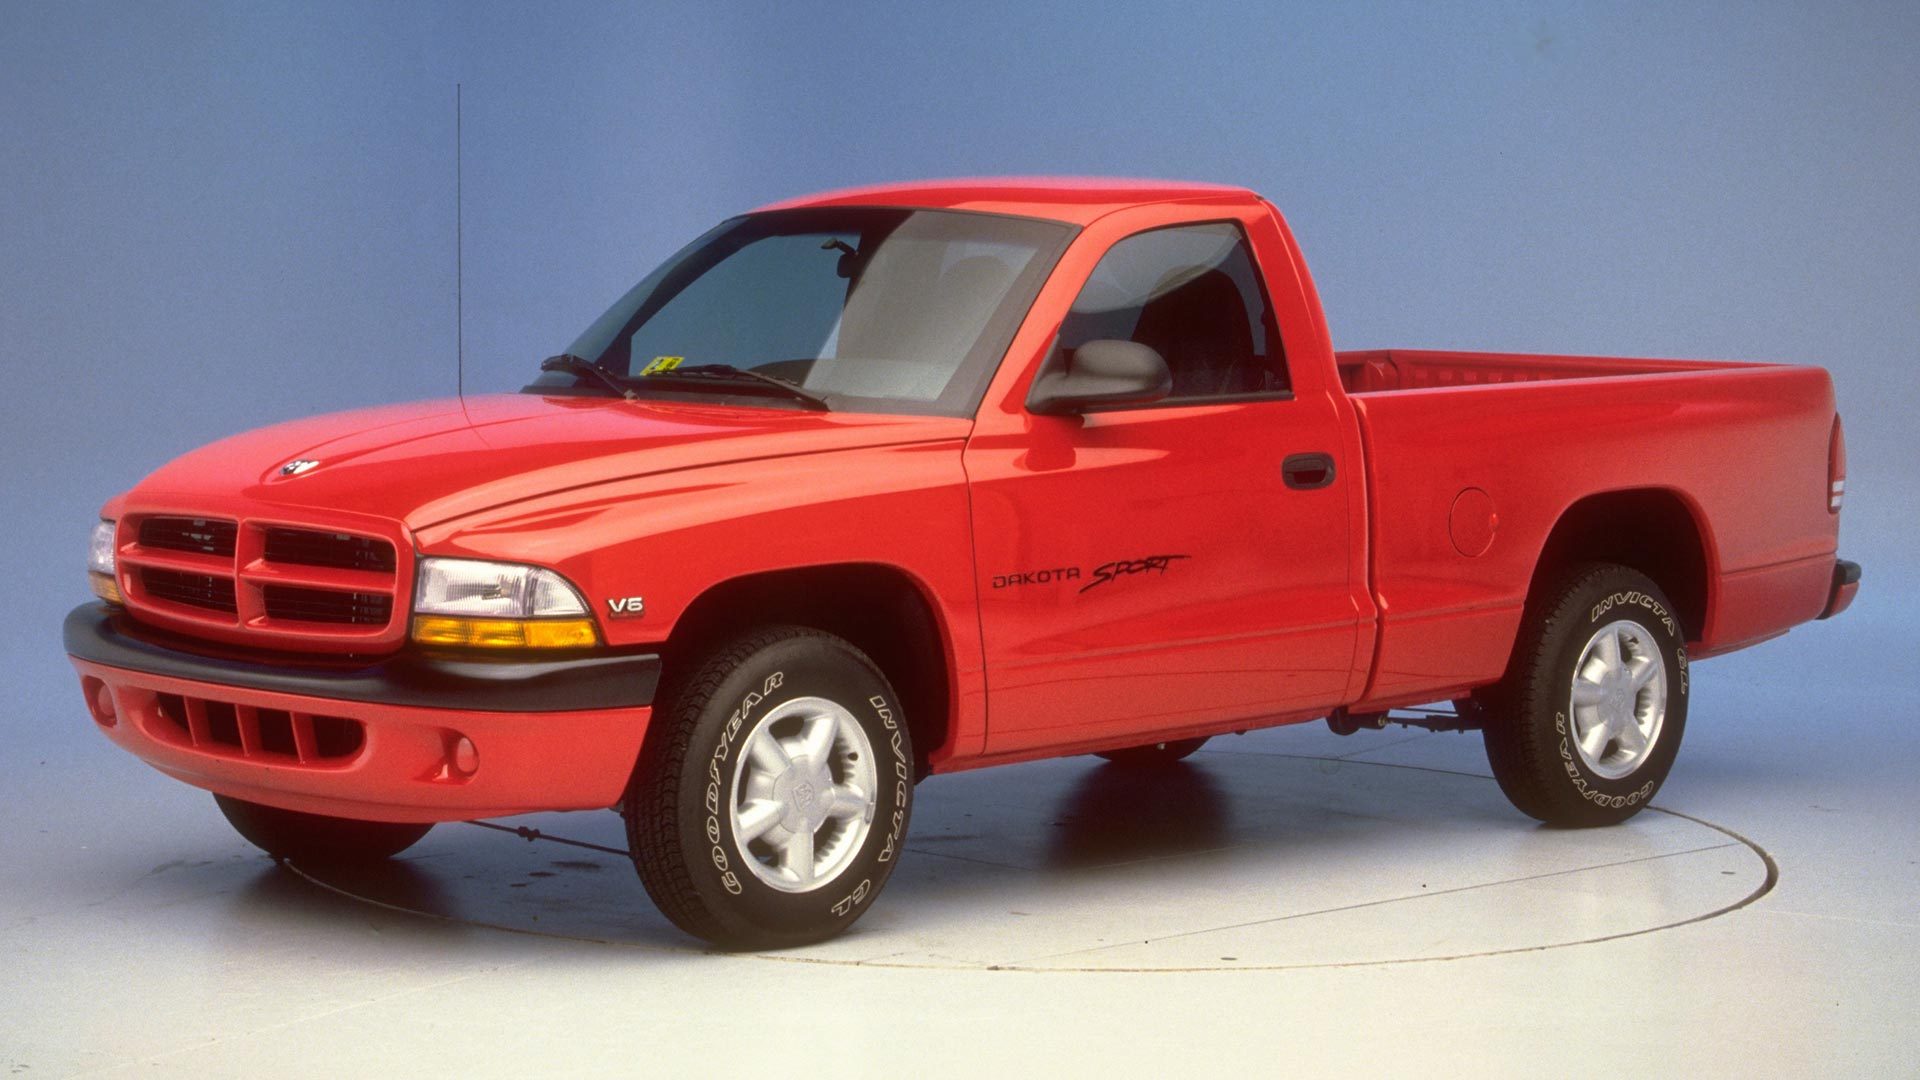 2004 Dodge Dakota Regular cab pickup